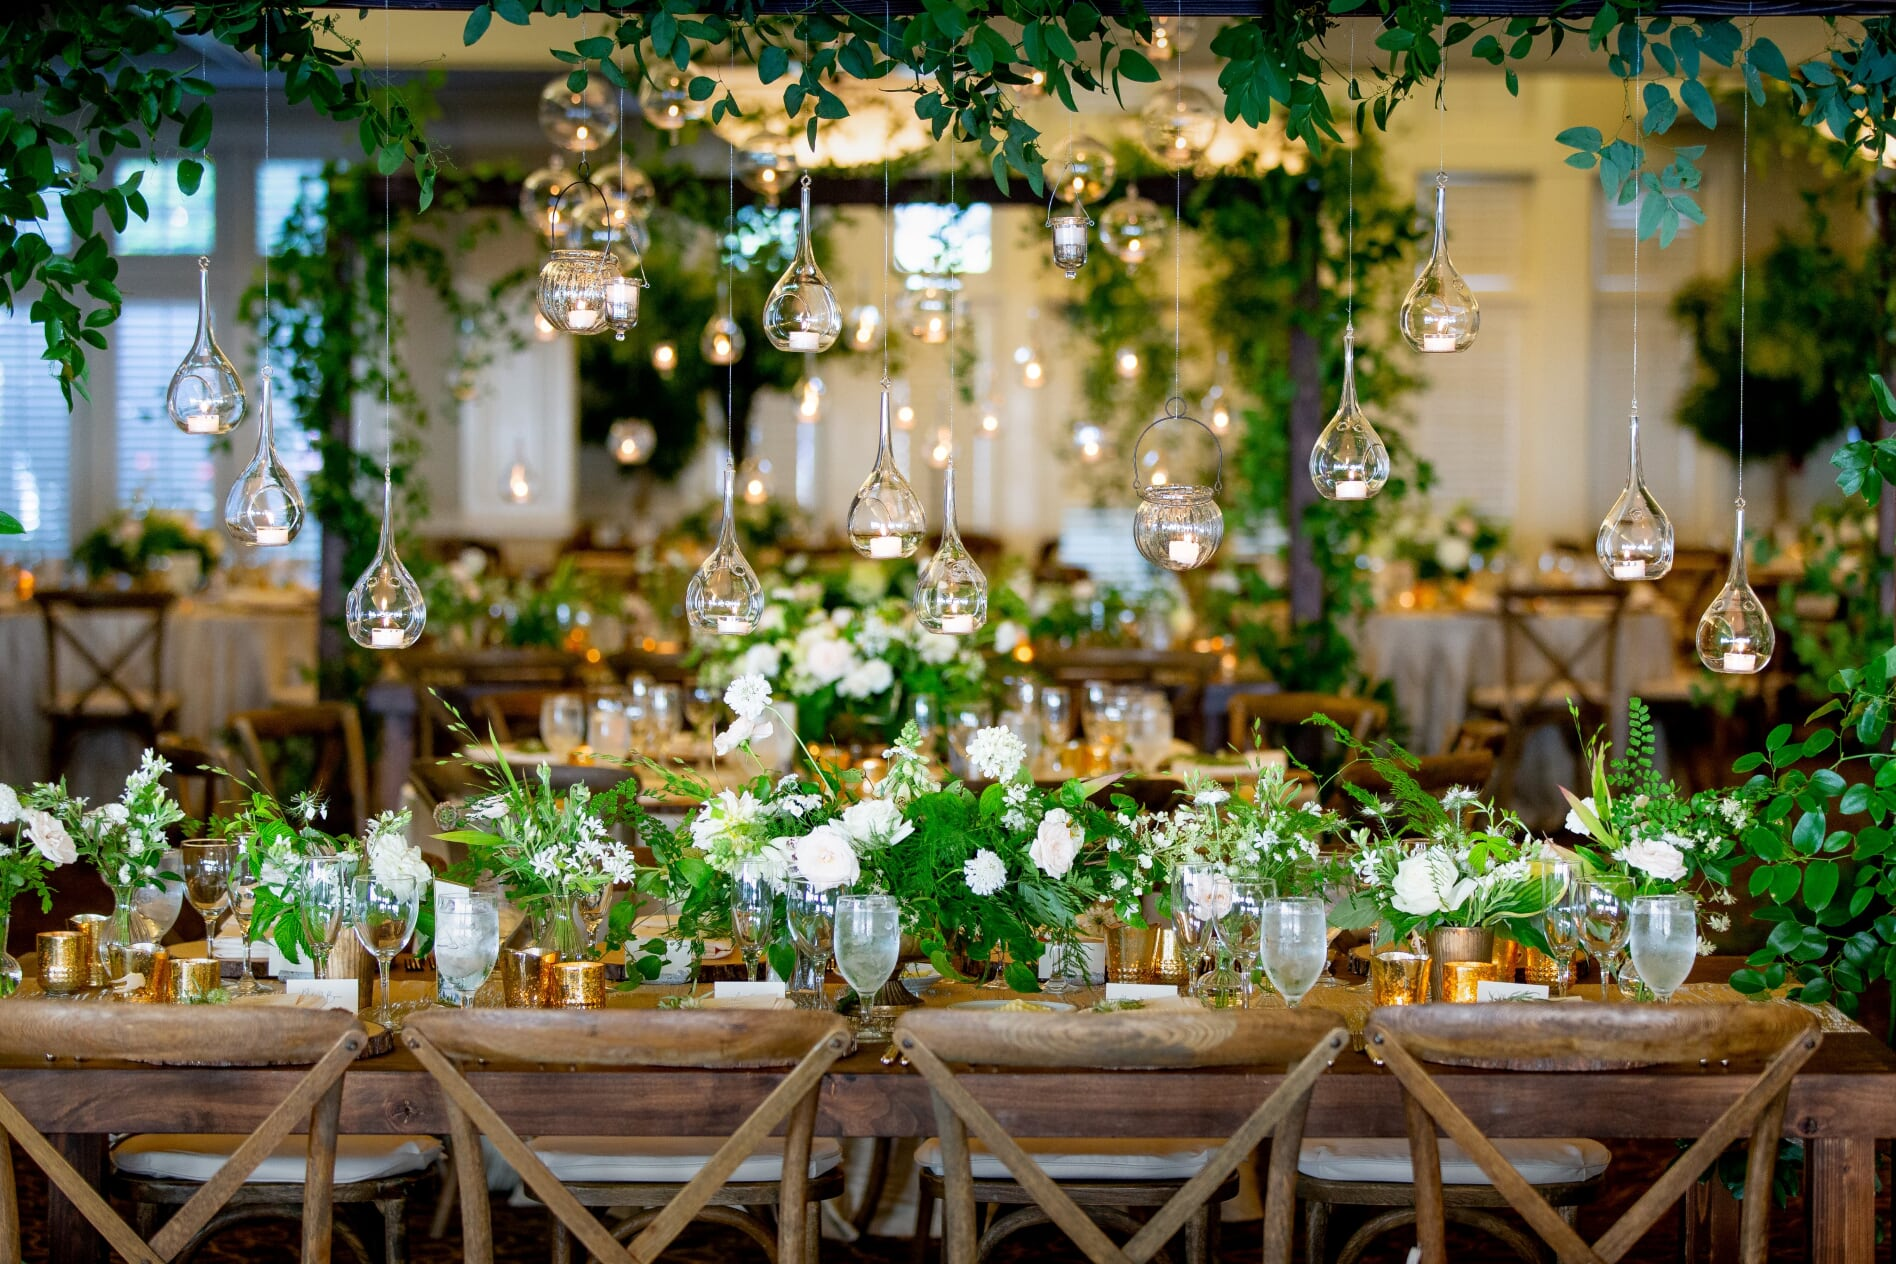 long wooden table with hanging candles and greenery at this Midsummer Night's Dream Wedding